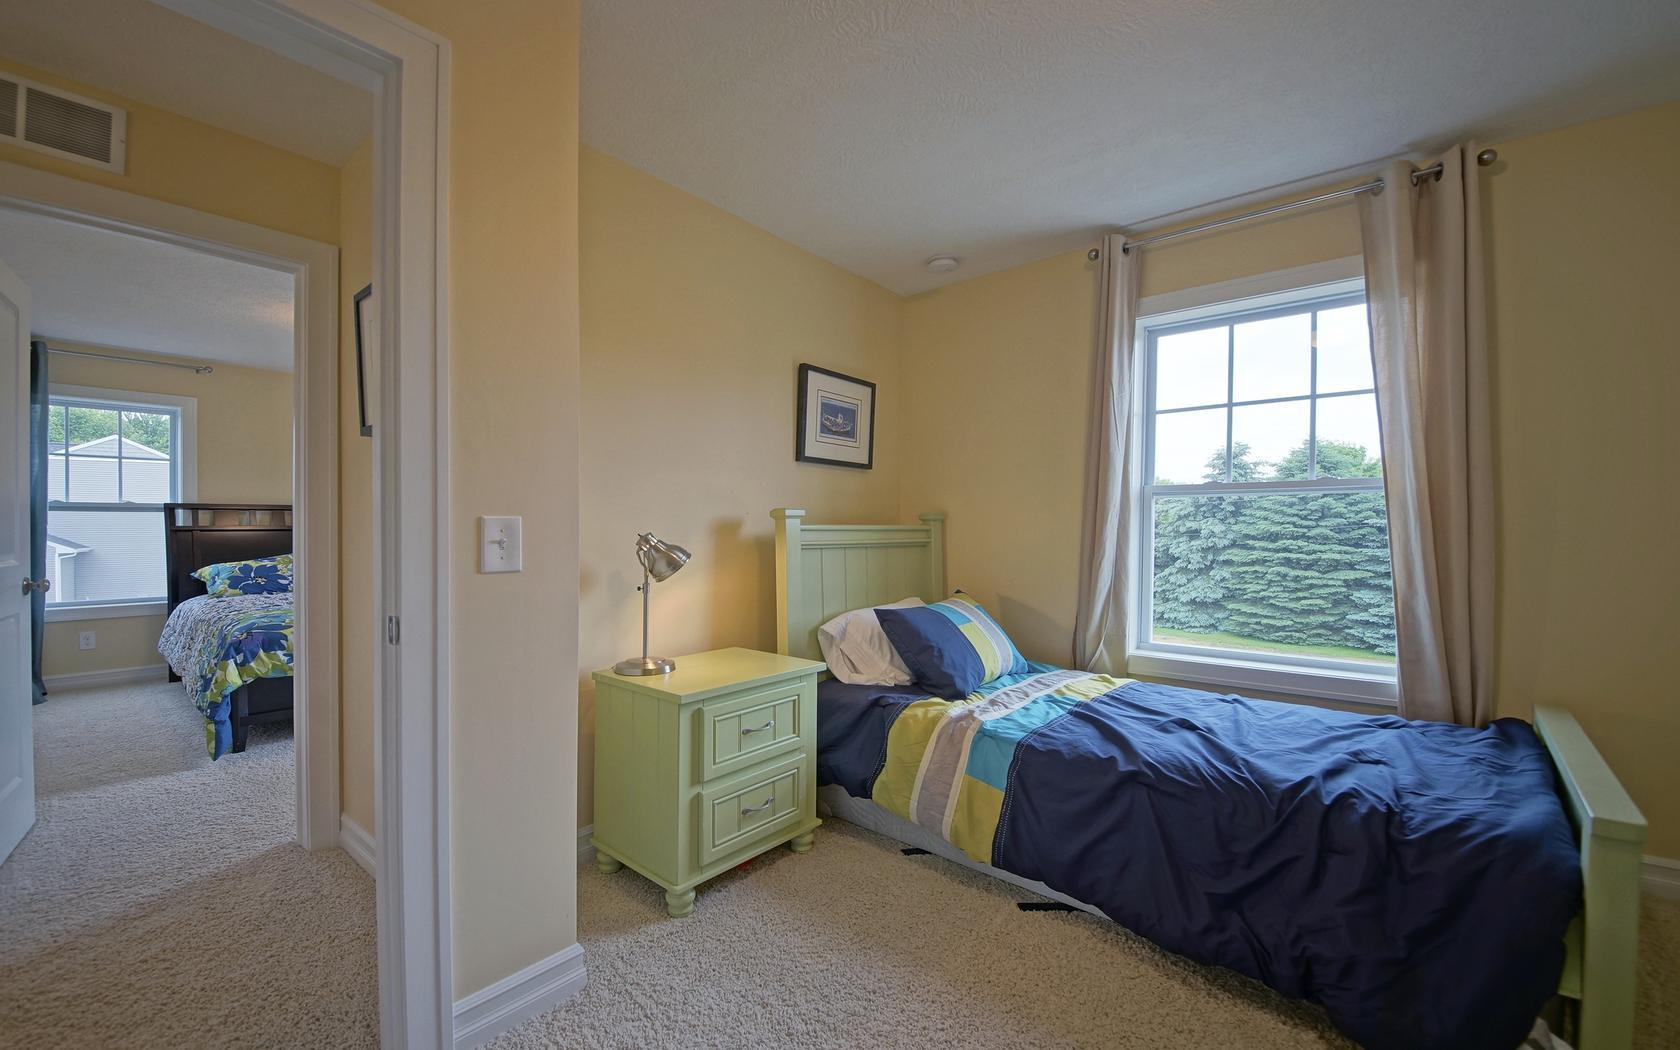 Bedroom featured in the Westwood By Mayberry Homes in Lansing, MI